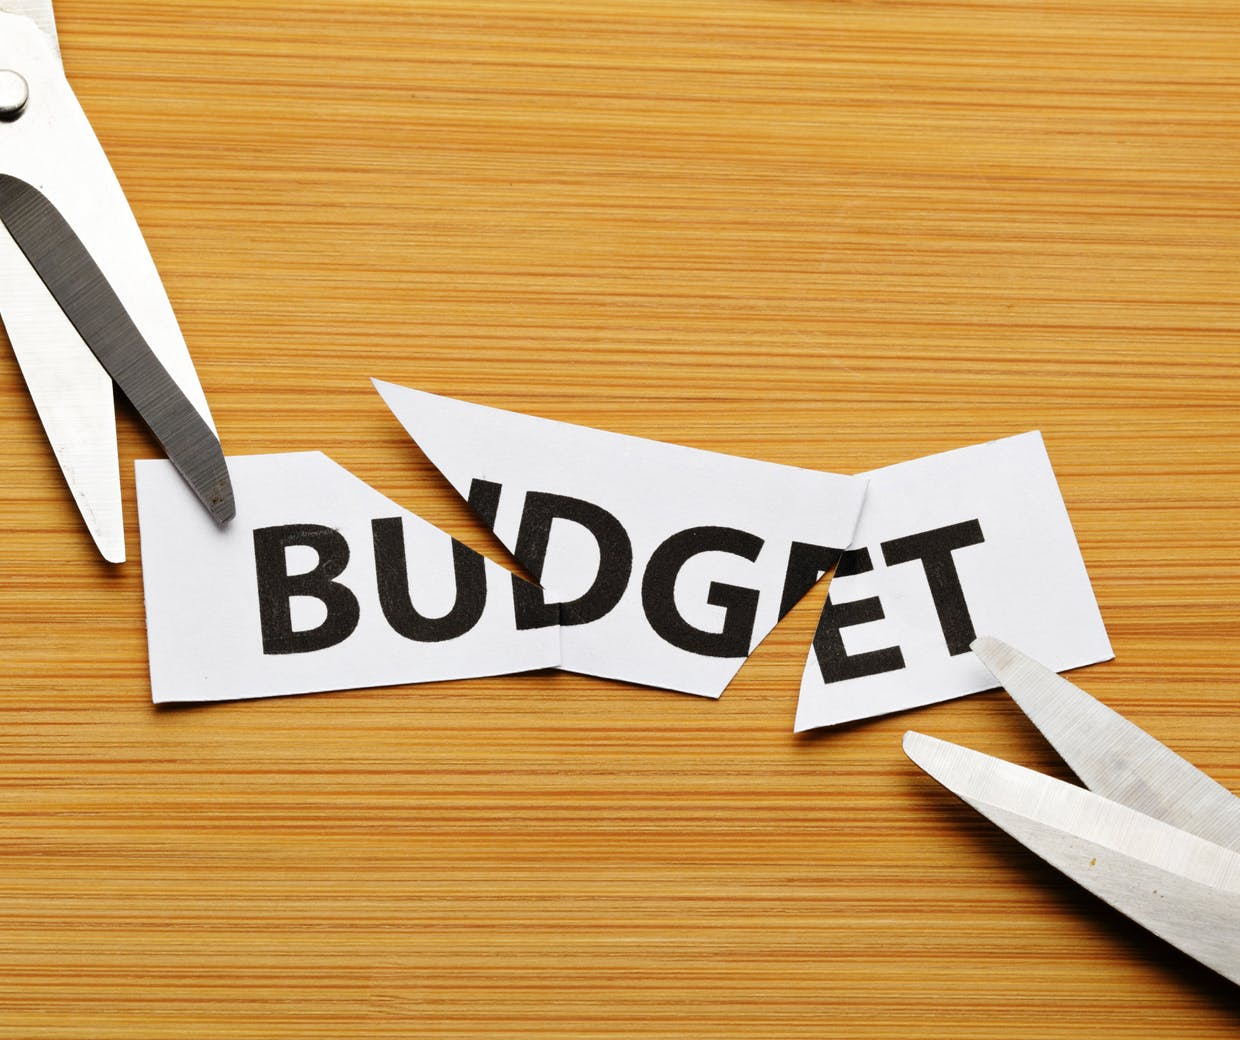 FY'20 sees budget cut to Tk5.02tn